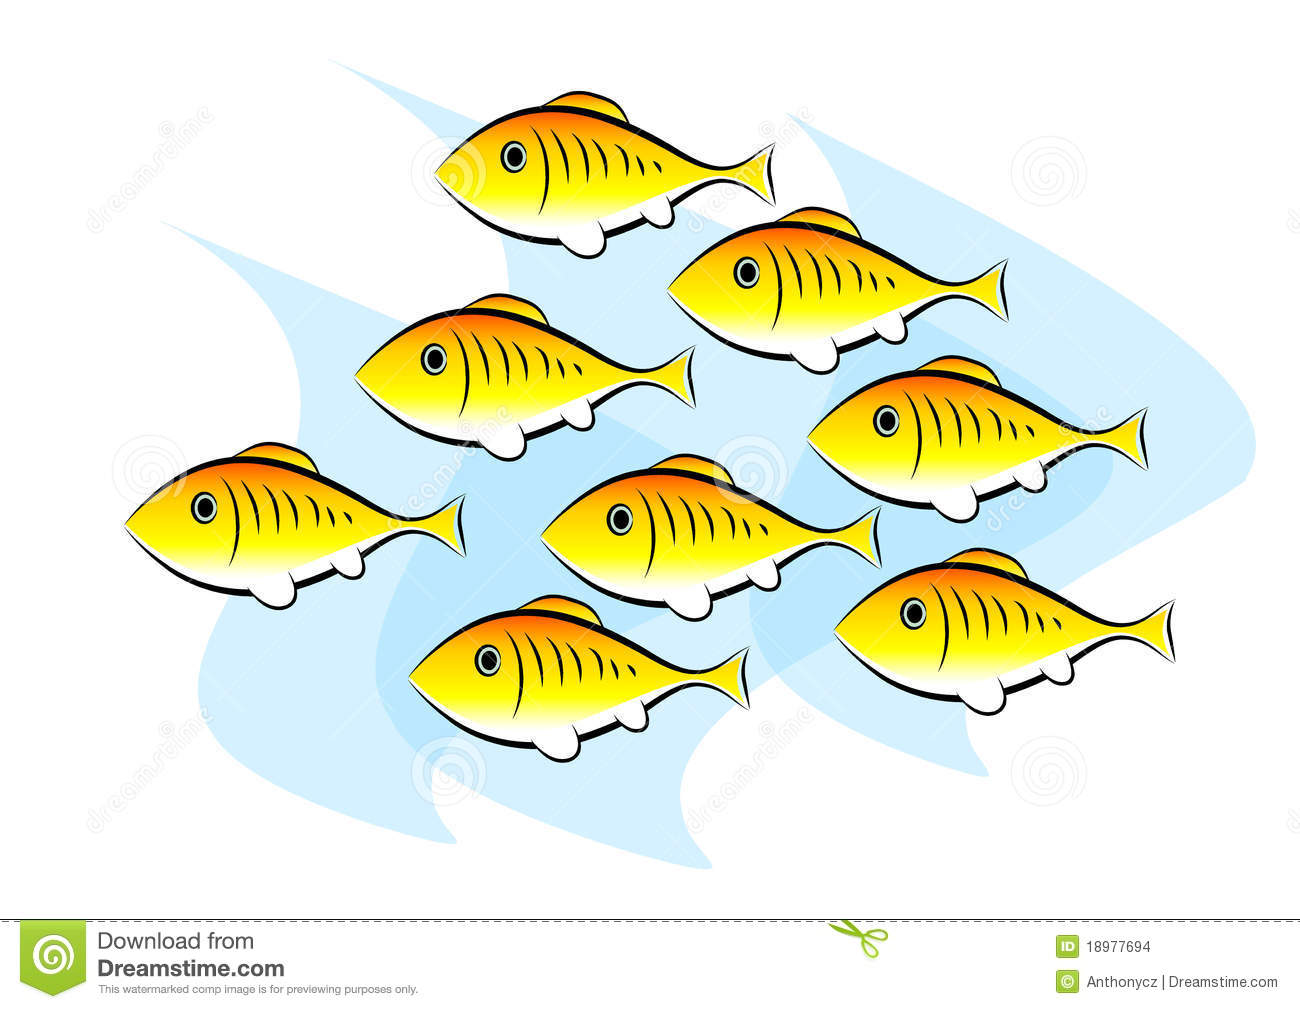 School of fish clipart 2 » Clipart Station.